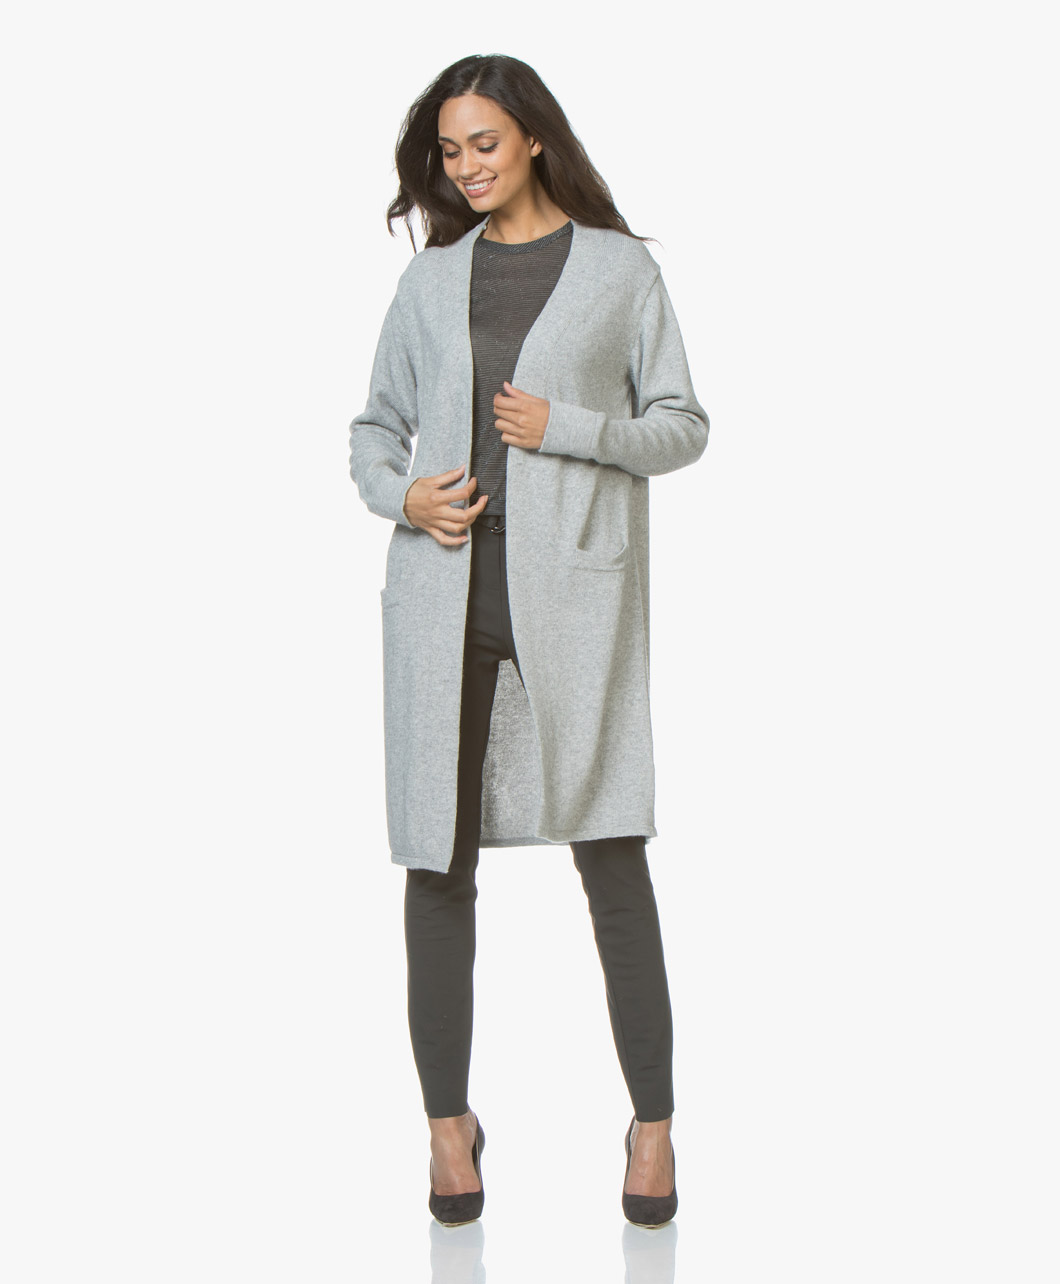 f02f8ebe4af Resort Finest Maxime Long Open Cardigan - Grey - 6184 maxime